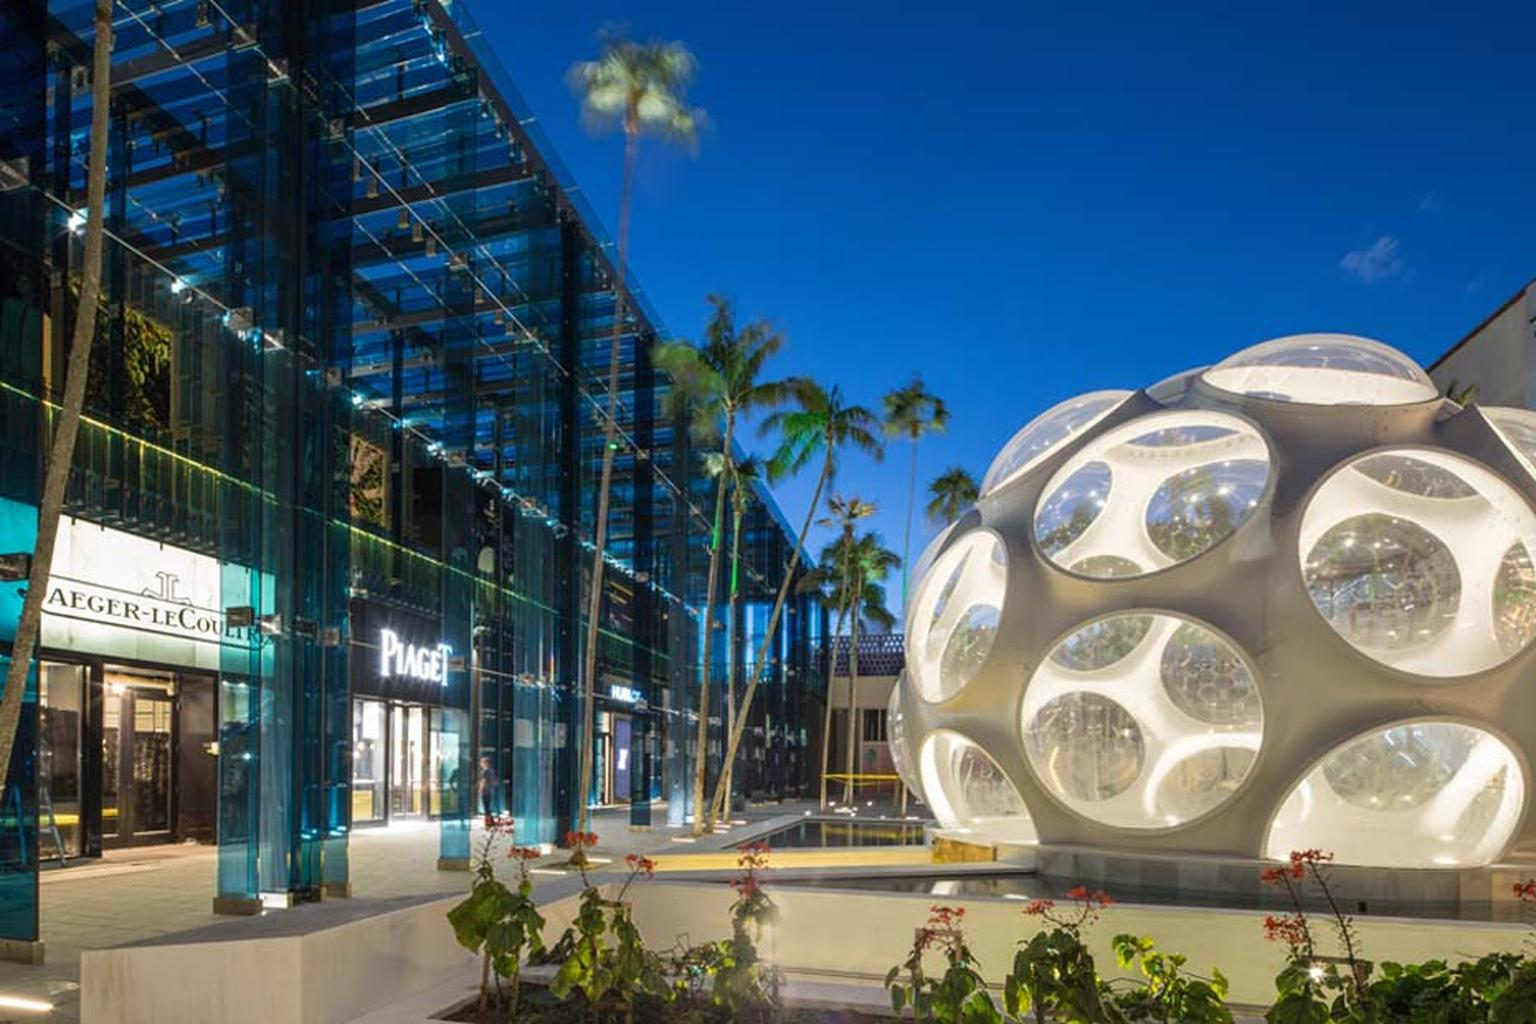 Fifteen years ago entrepreneur Craig Robins, a Miami native, recognized the potential of the Miami Design District and starting procuring properties in the area. Today, it is one of the most up and coming areas and is home to a plethora of top brand names